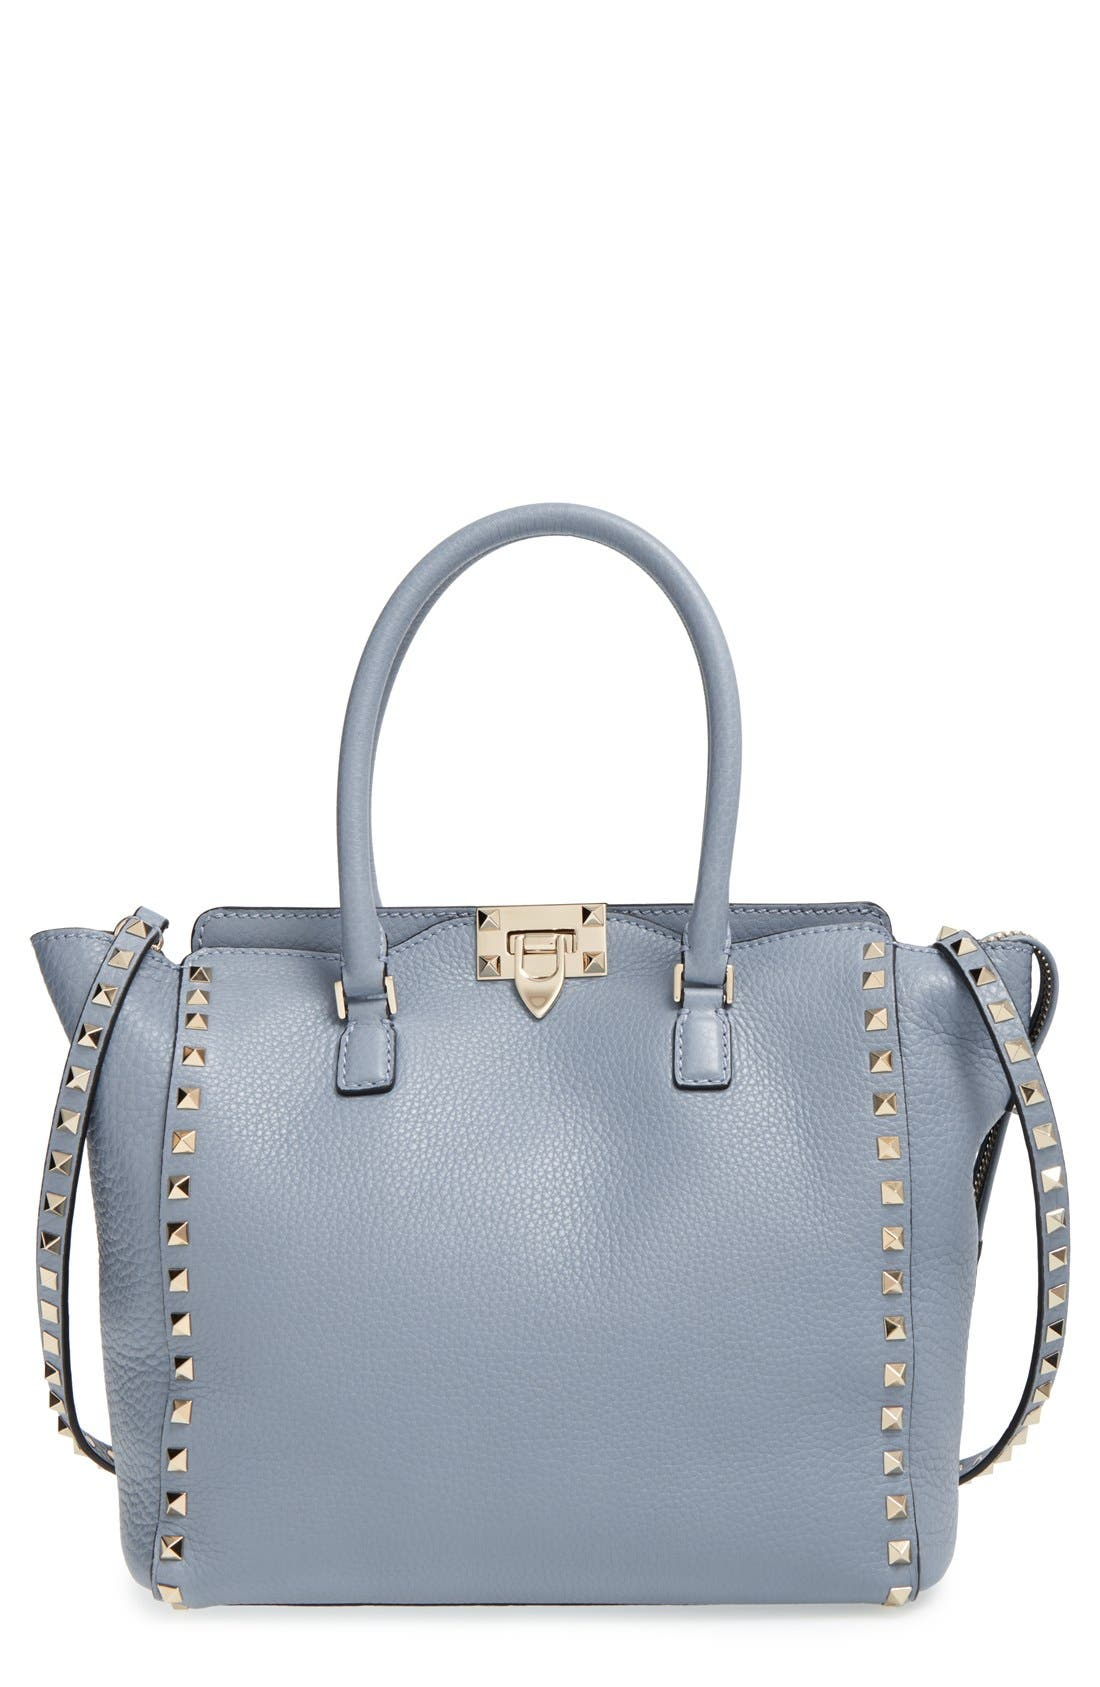 Alternate Image 1 Selected - Valentino 'Rockstud Double Handle' Leather Tote